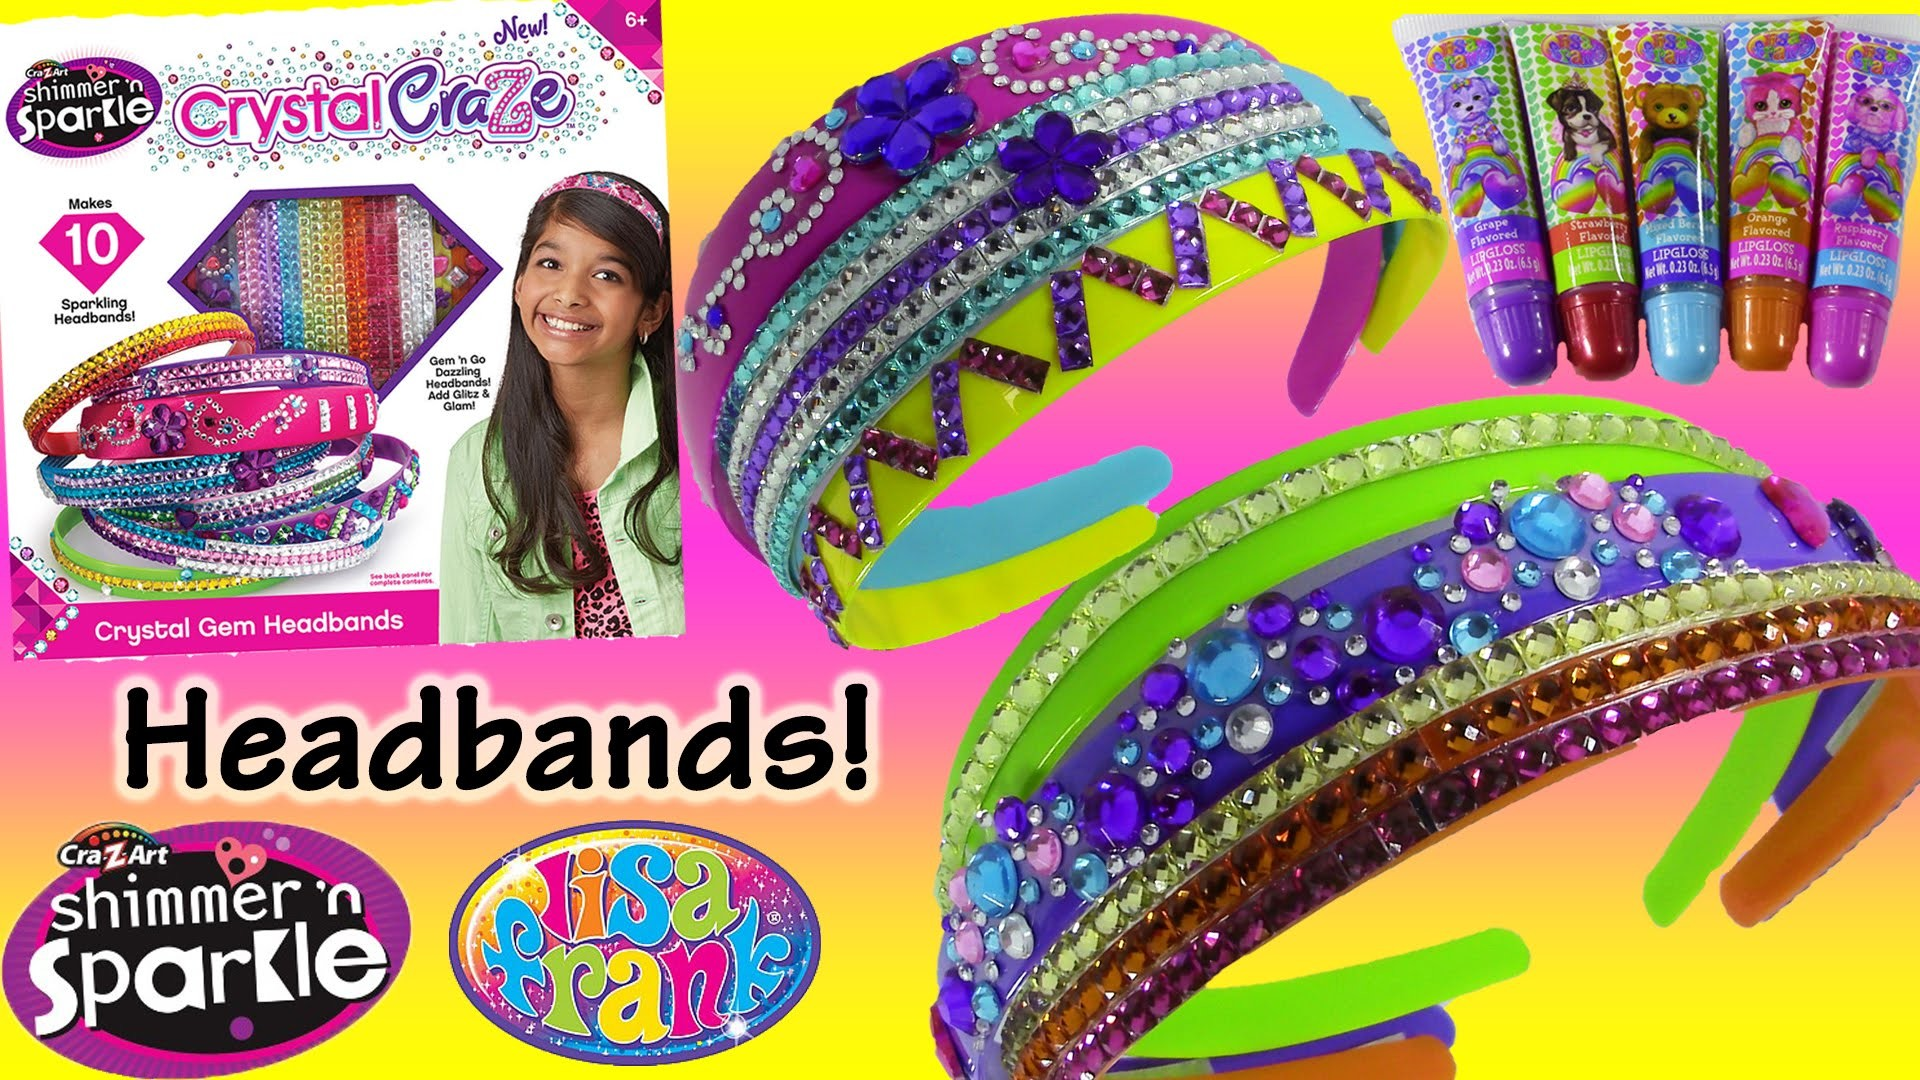 Cra-Z-Art Shimmer 'n Sparkle Crystal Craze DIY Gem Headbands! LISA FRANK Lip Gloss FUN